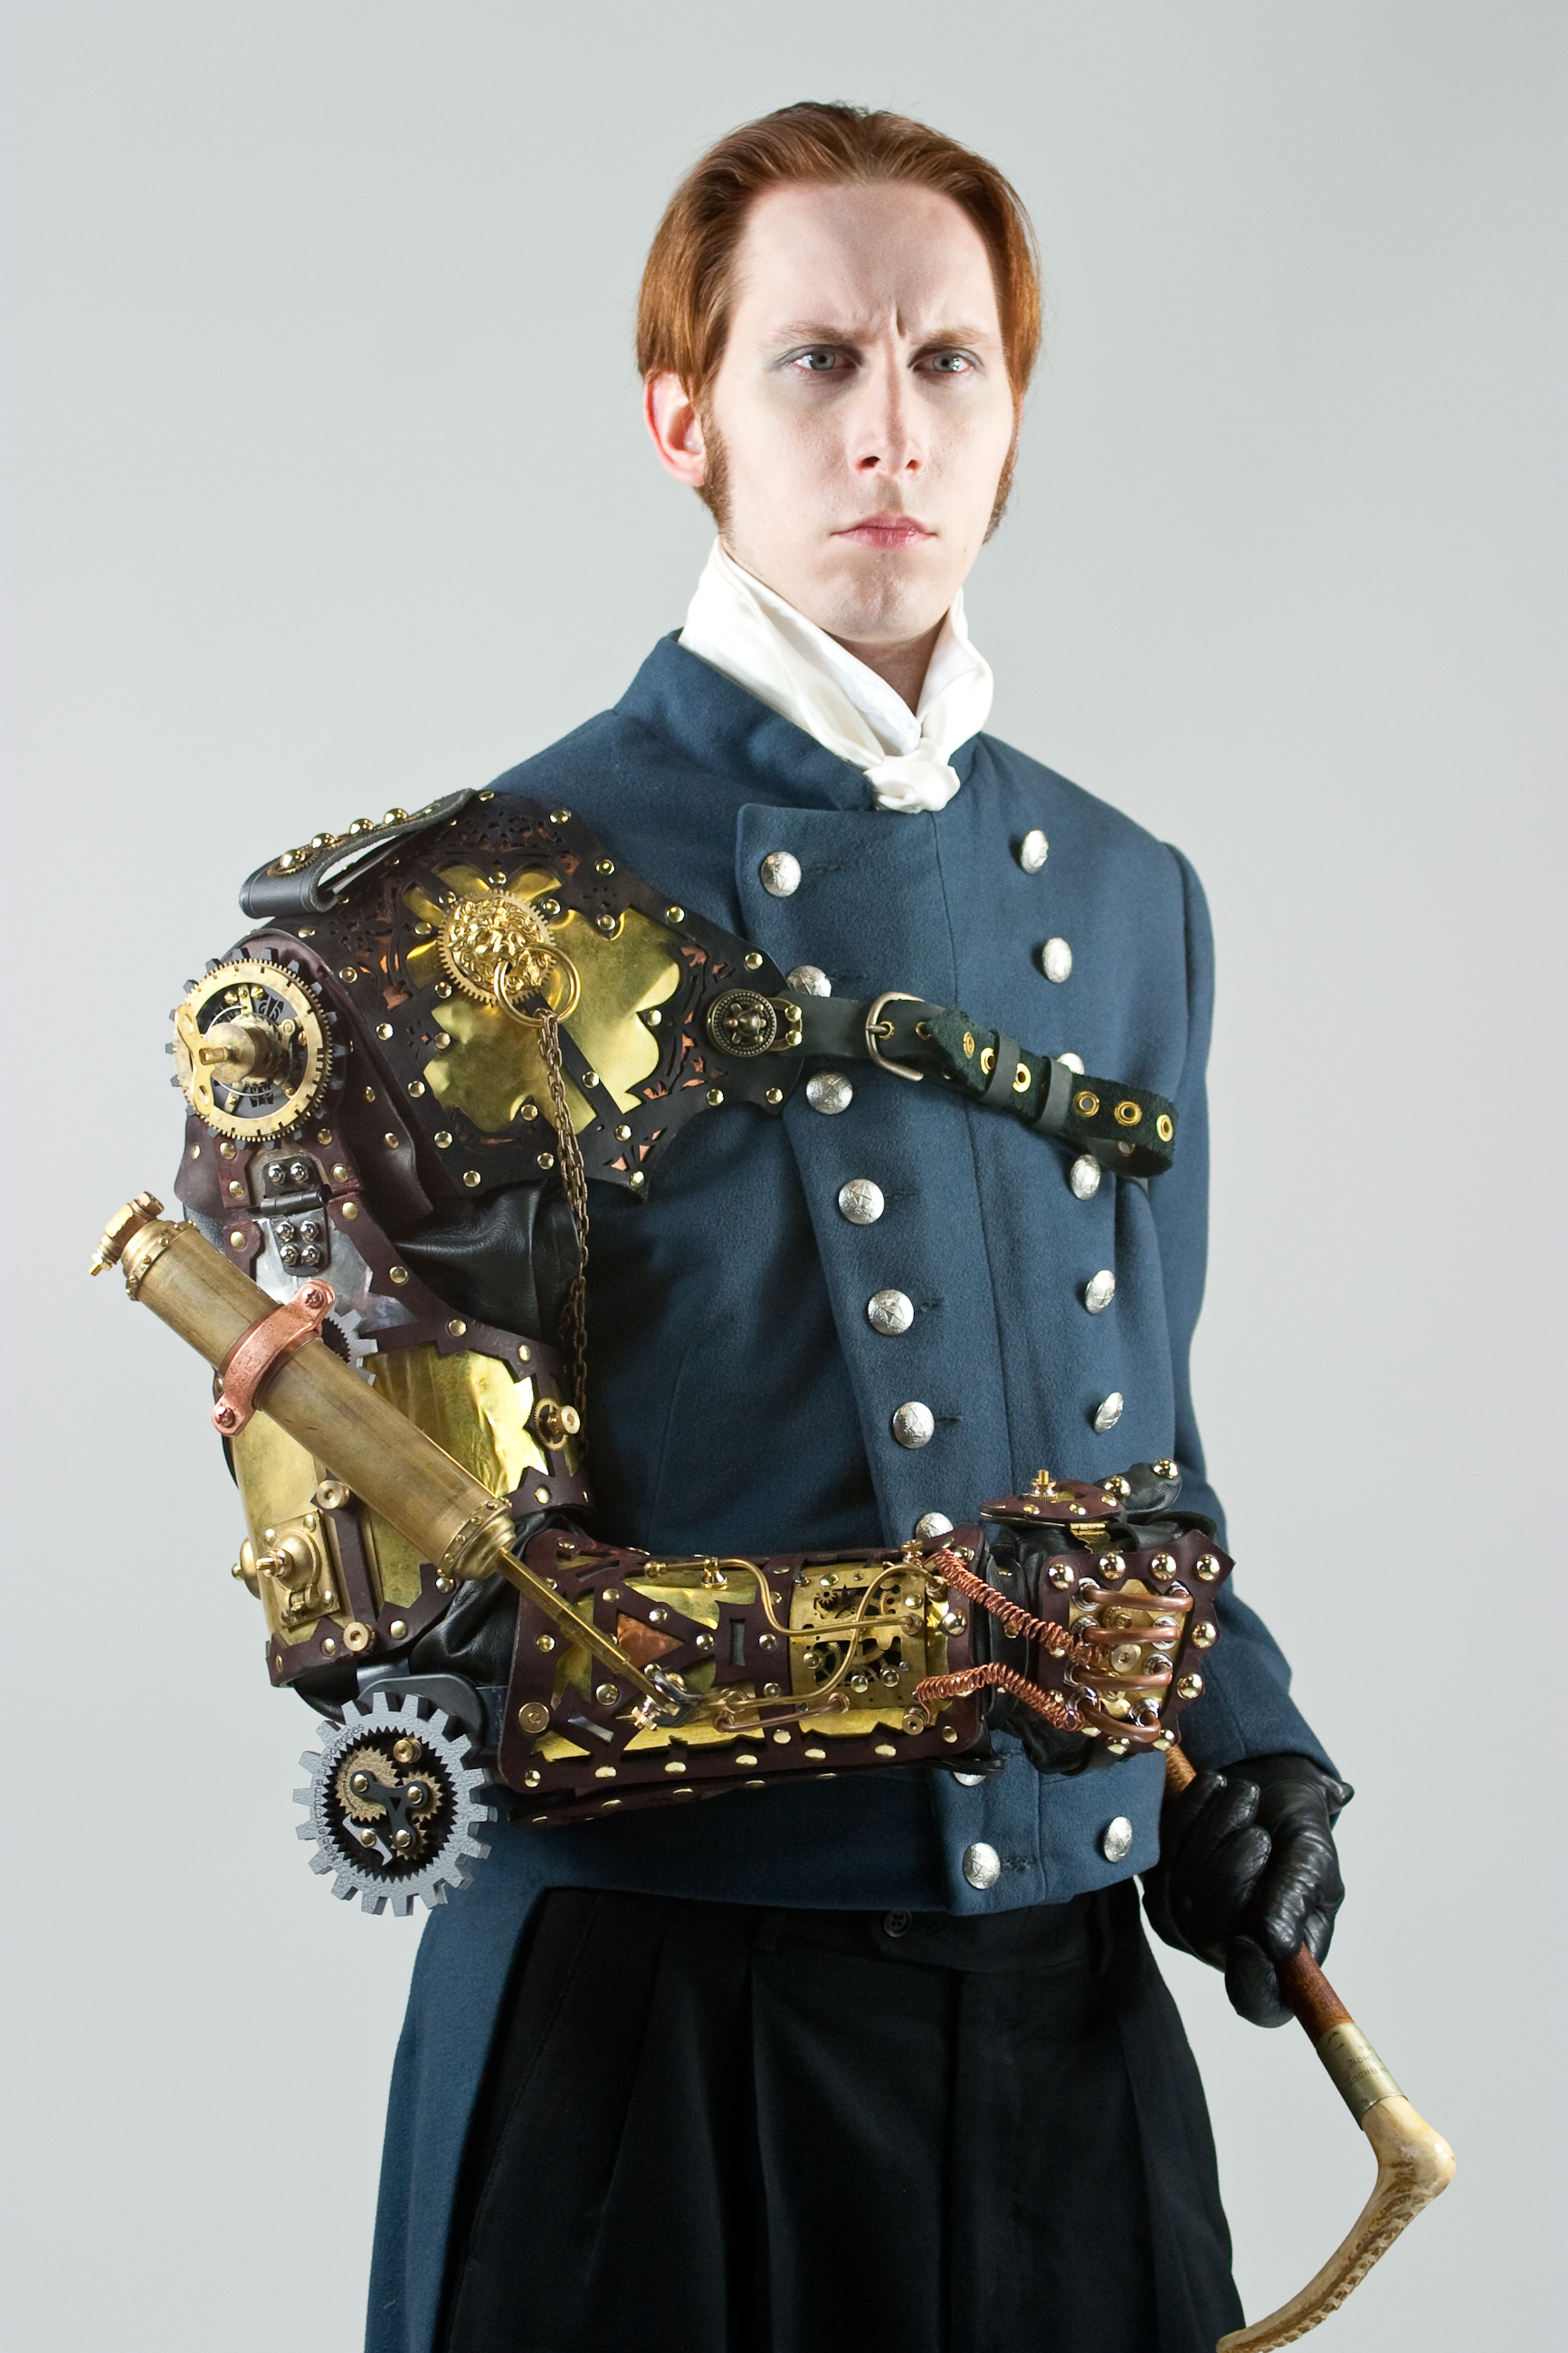 Steampunk // Super Fashion | Thirstycrow Magazine